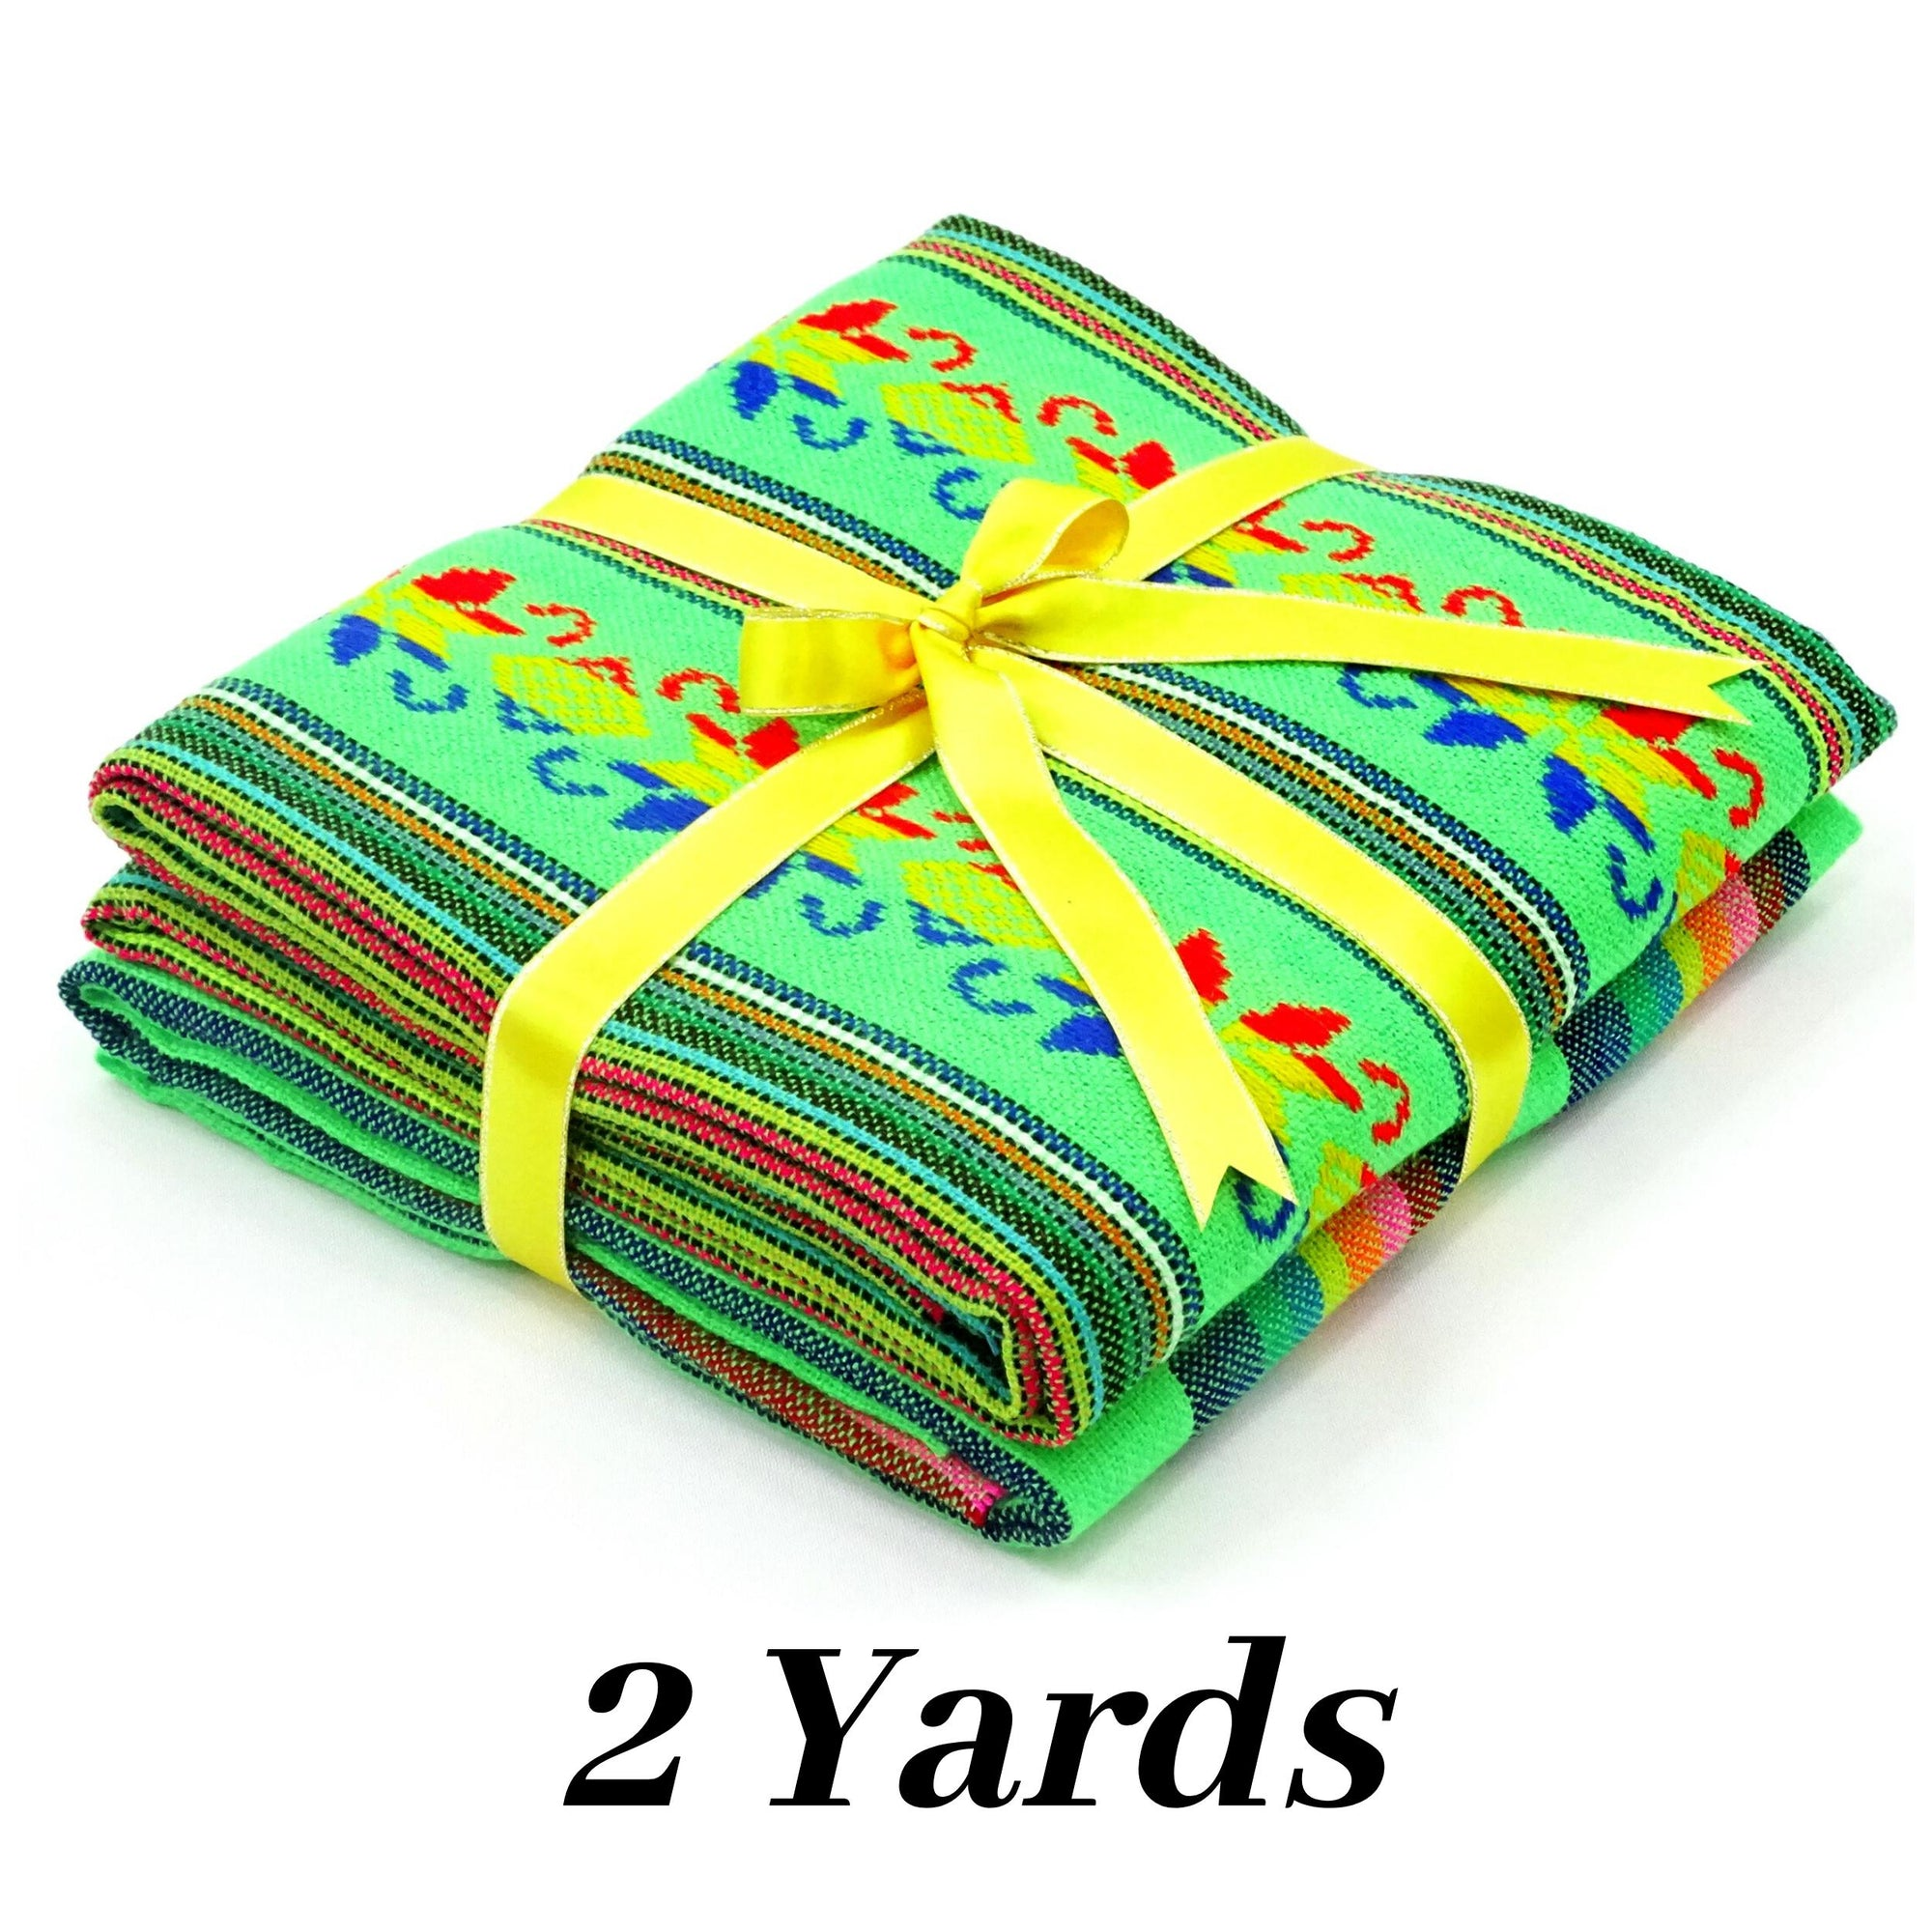 Fiesta Decoartion, Mexican fabric, 2 yards, Cinco de Mayo, Green Fabric,